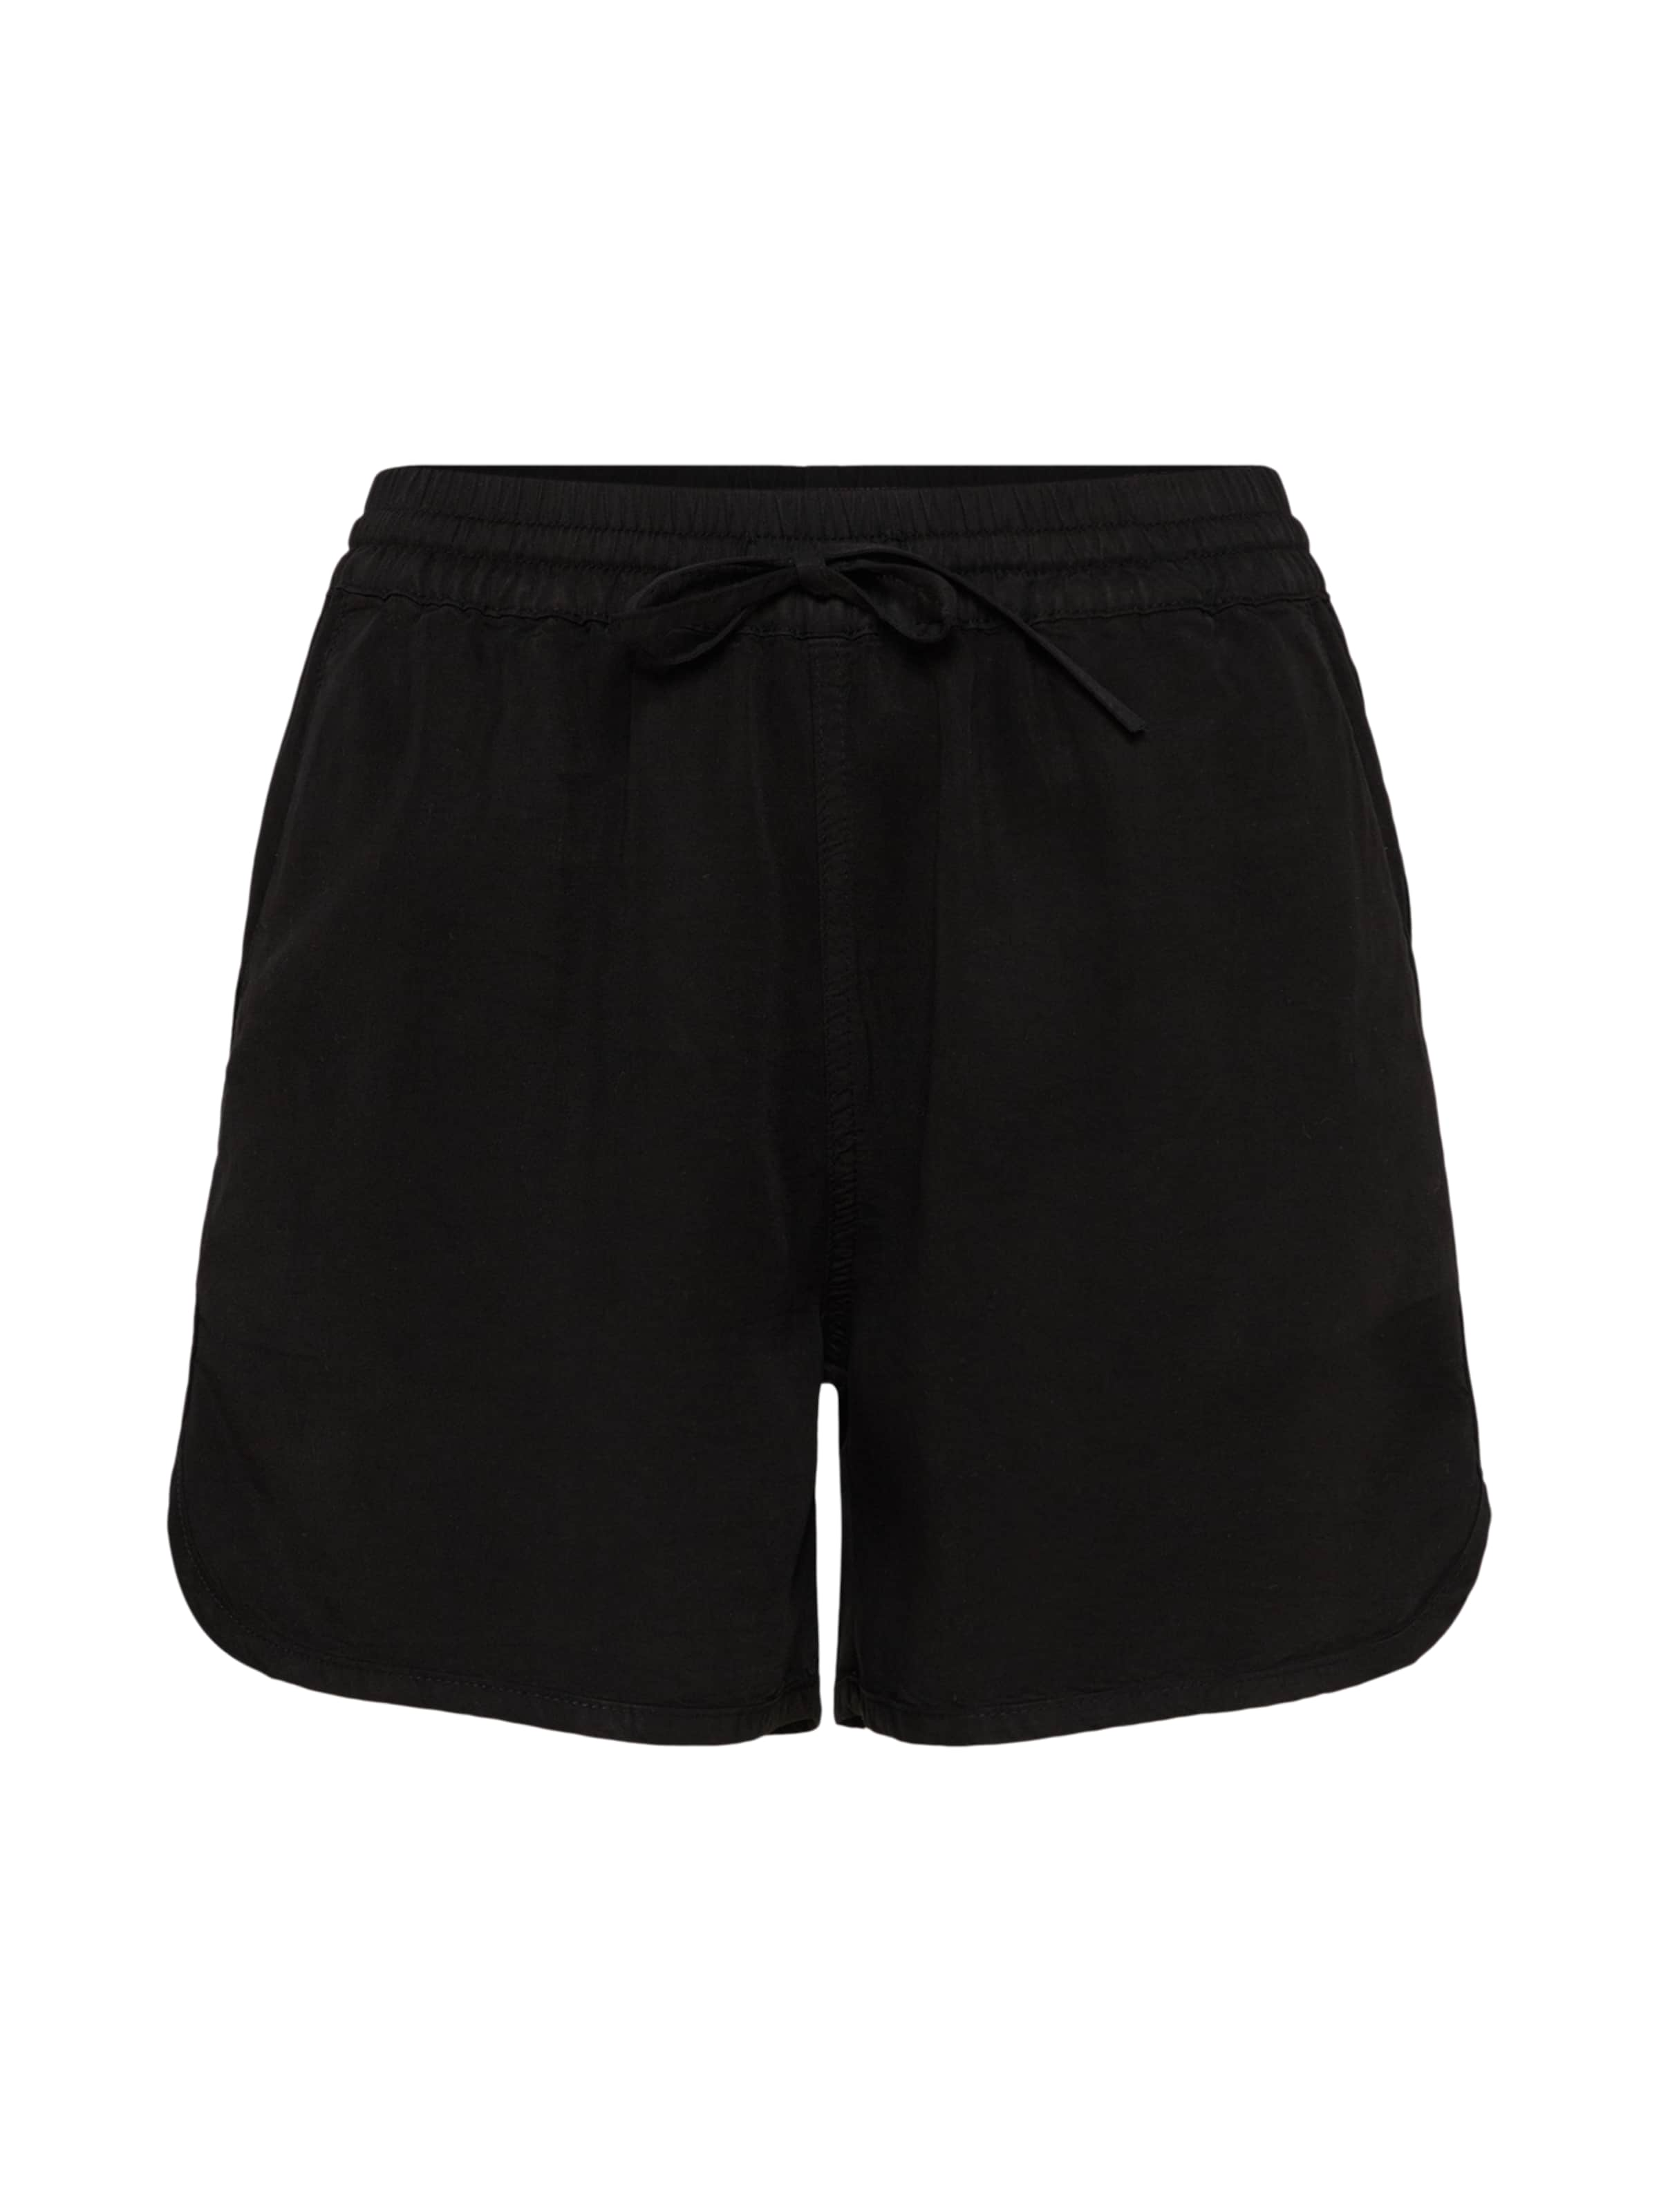 May 'endi' Schwarz Noisy Shorts In WEID2YHe9b